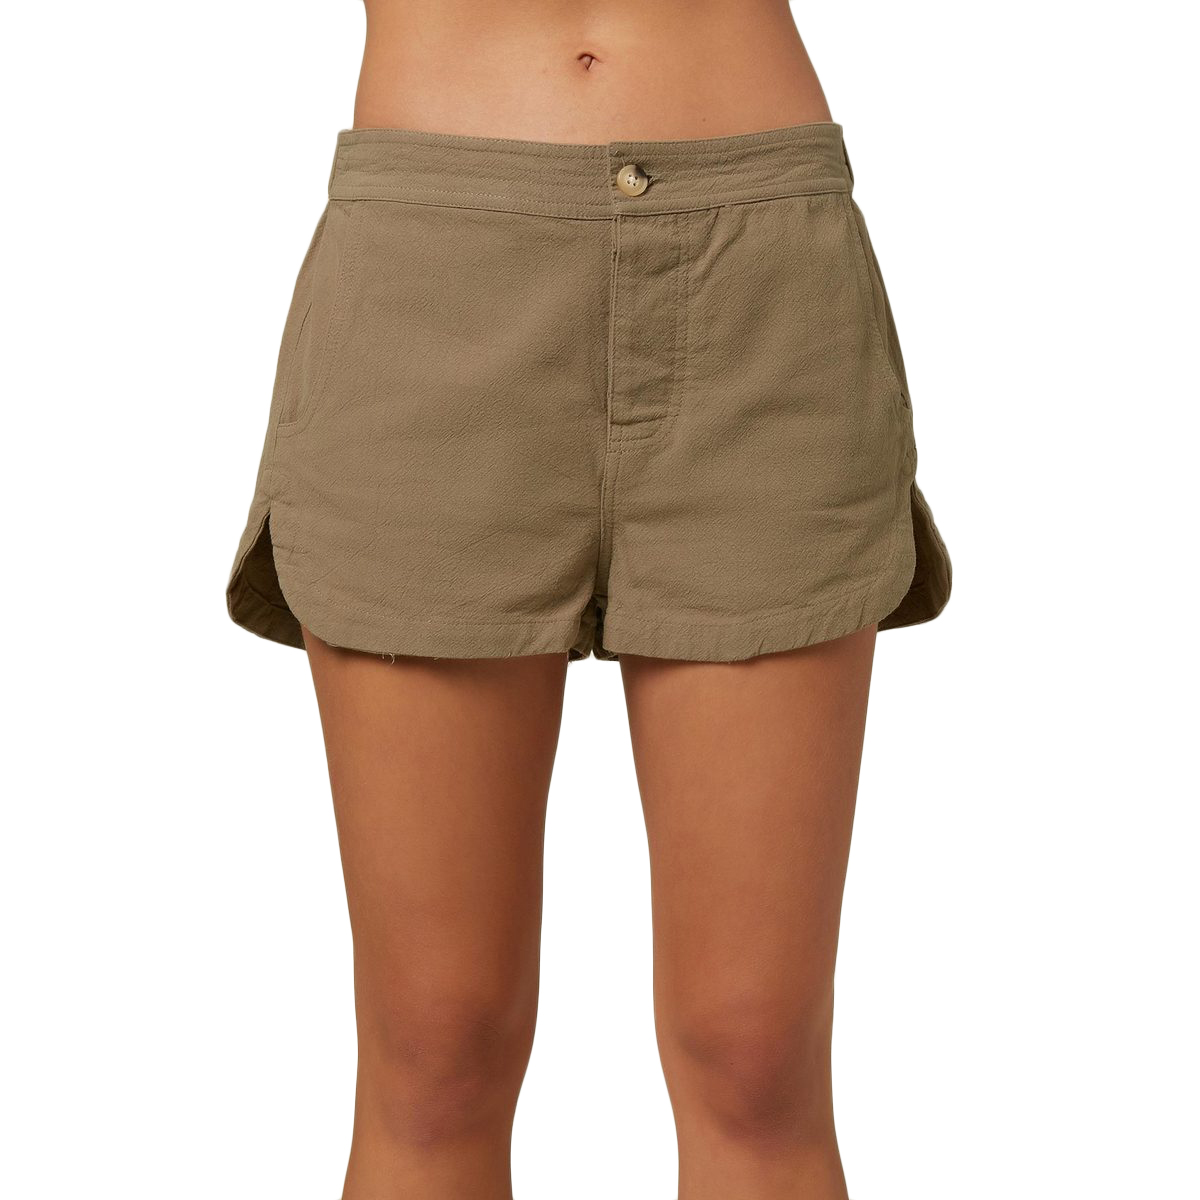 O'neill Women's Bismark Shorts - Green, M